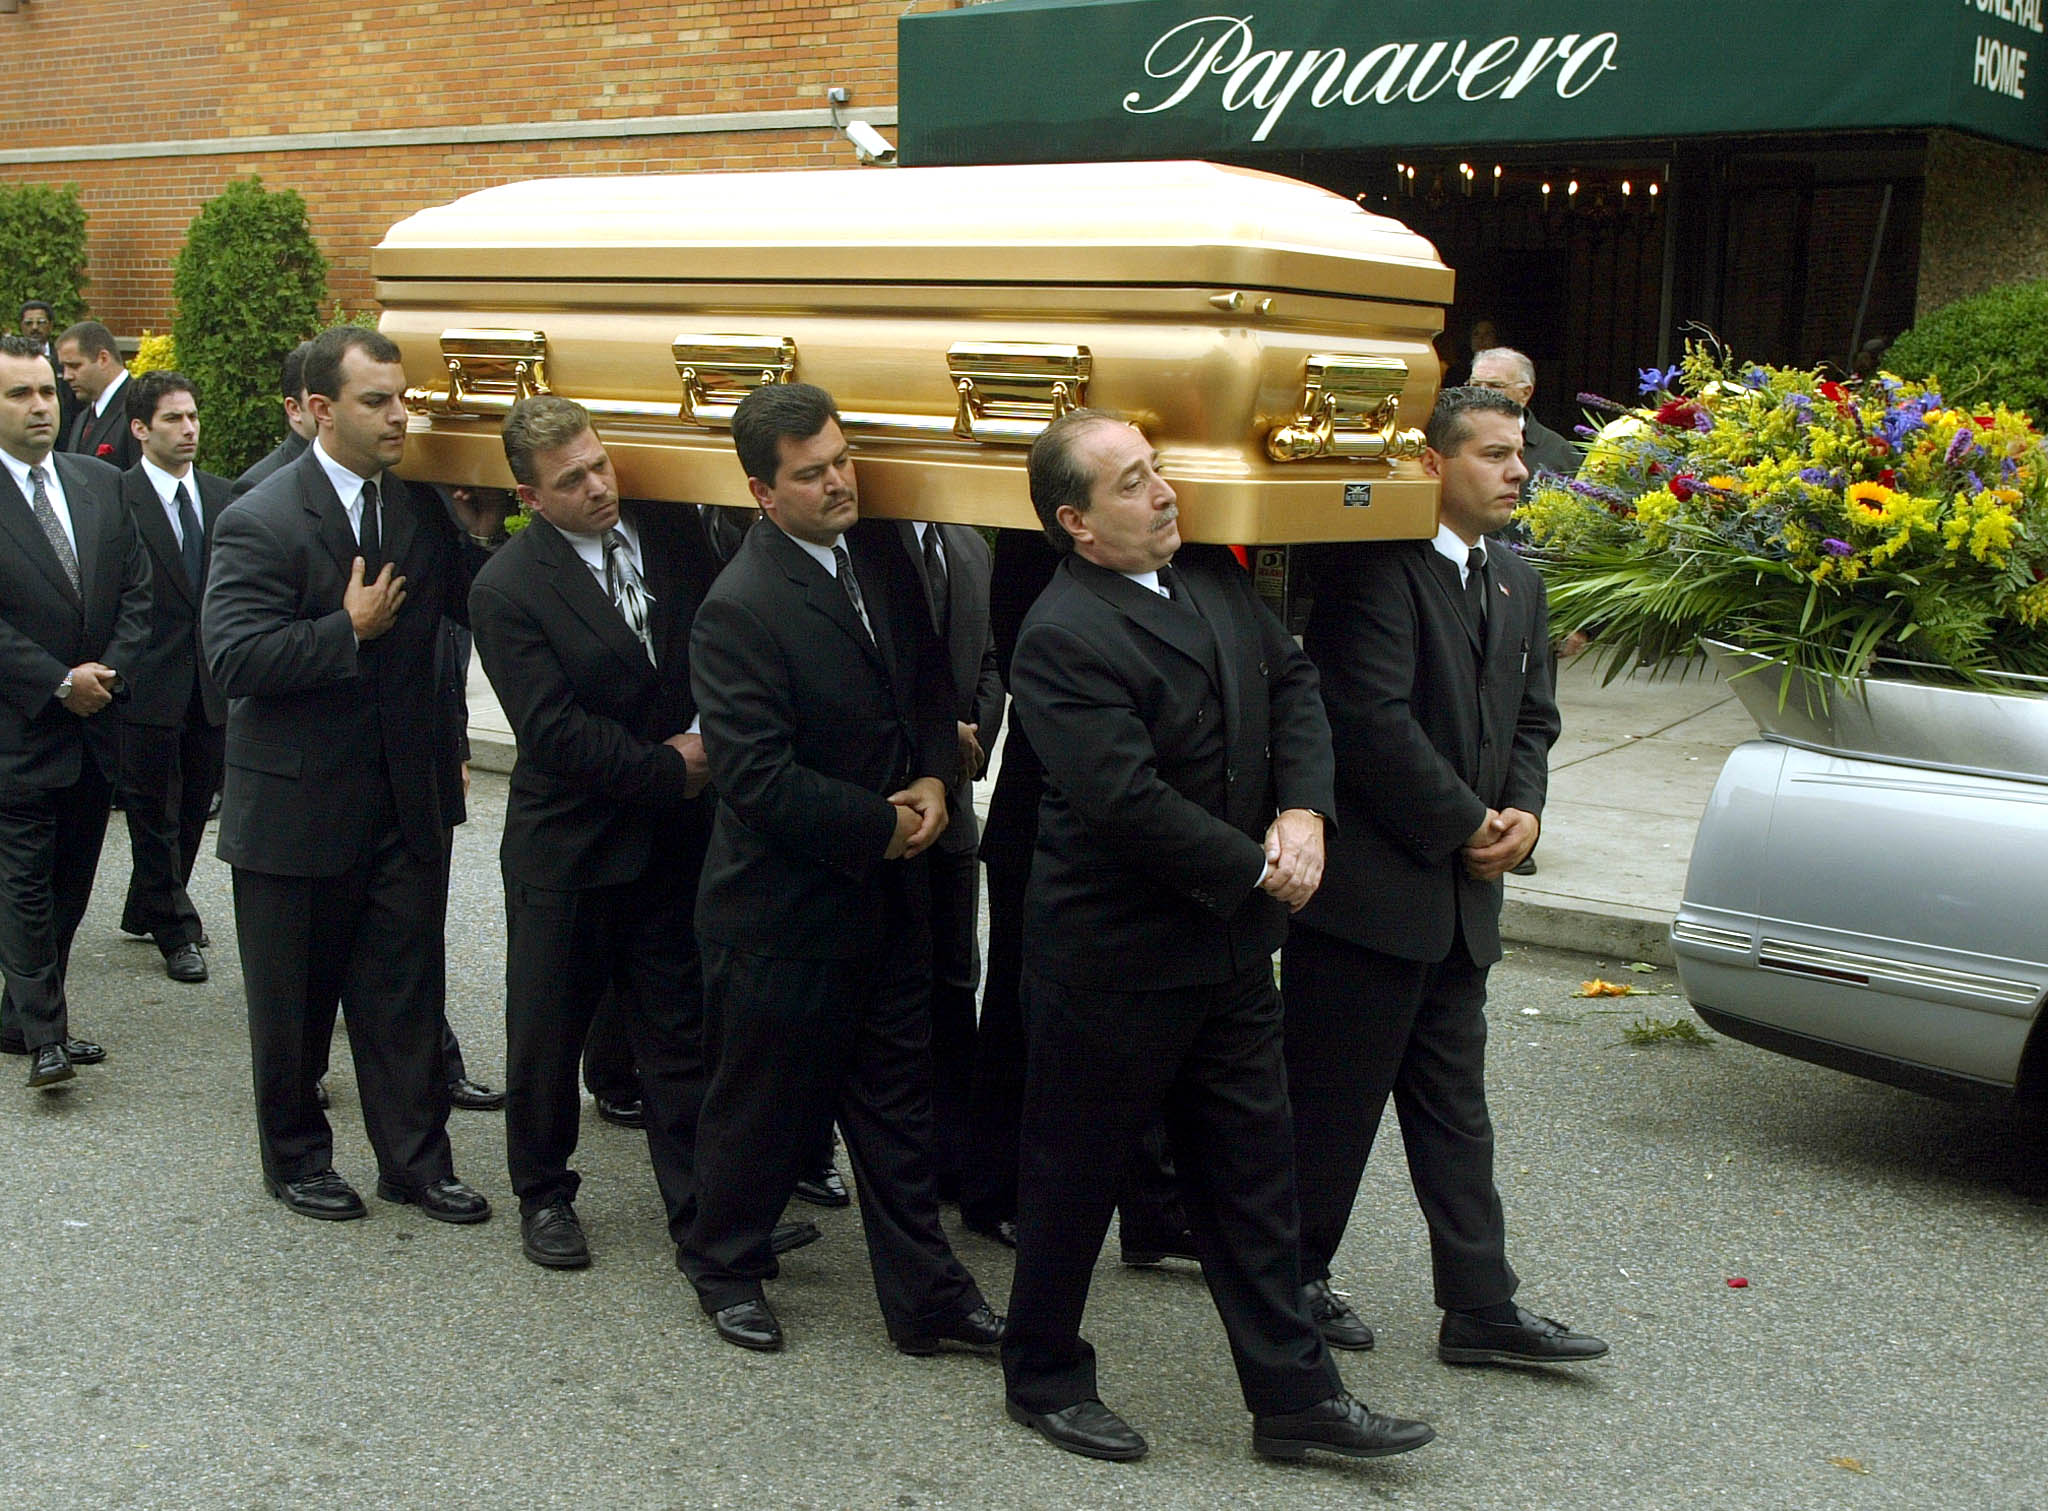 The body of former mob boss John Gotti is carried from Papavero Funeral Home in the Queens borough of New York 15 June 2002. (DOUG KANTER/AFP/Getty Images)